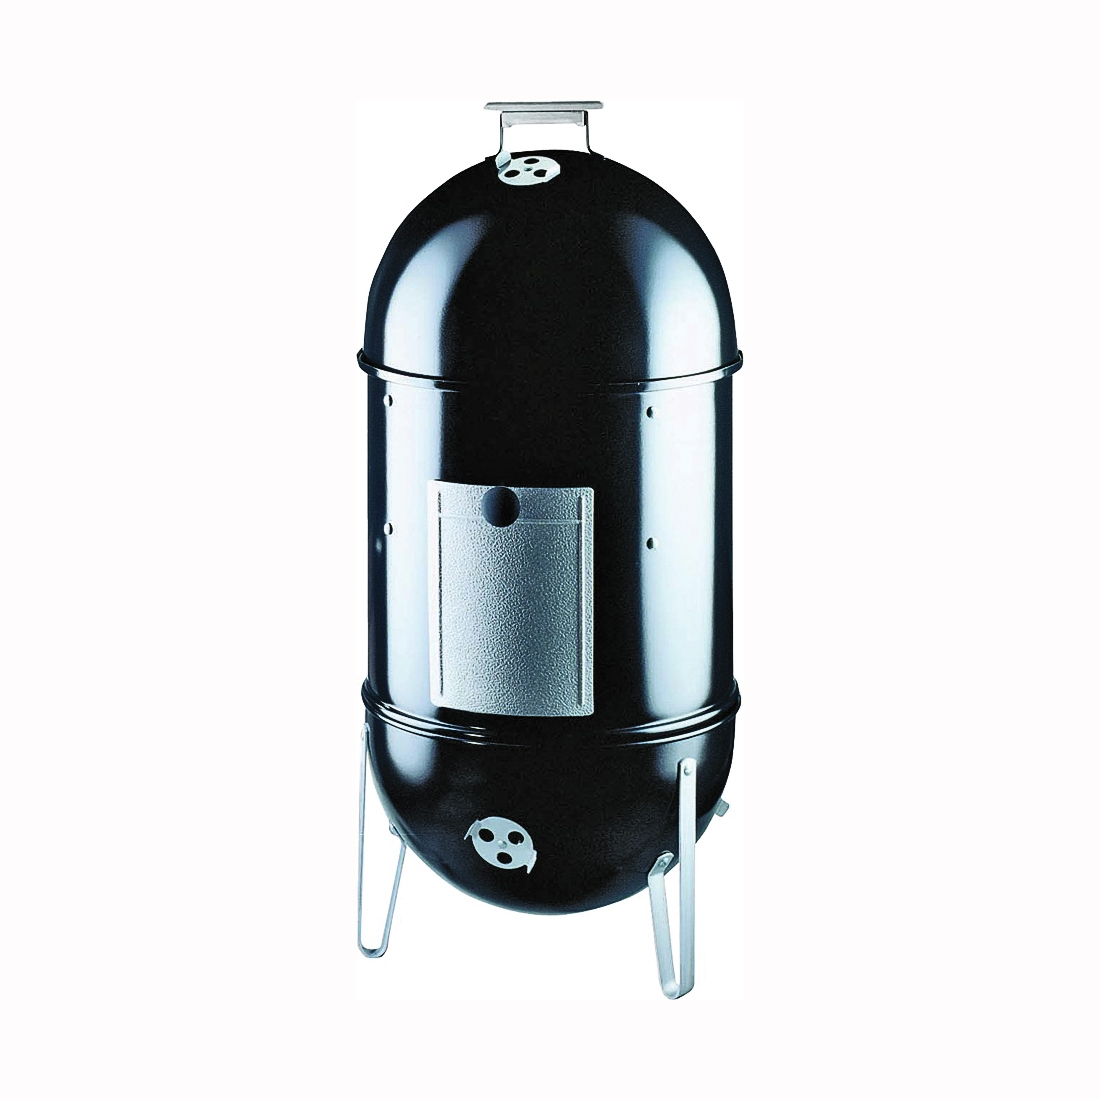 Picture of Weber Smokey Mountain Cooker 721001 Charcoal Smoker, Charcoal, Steel, Black